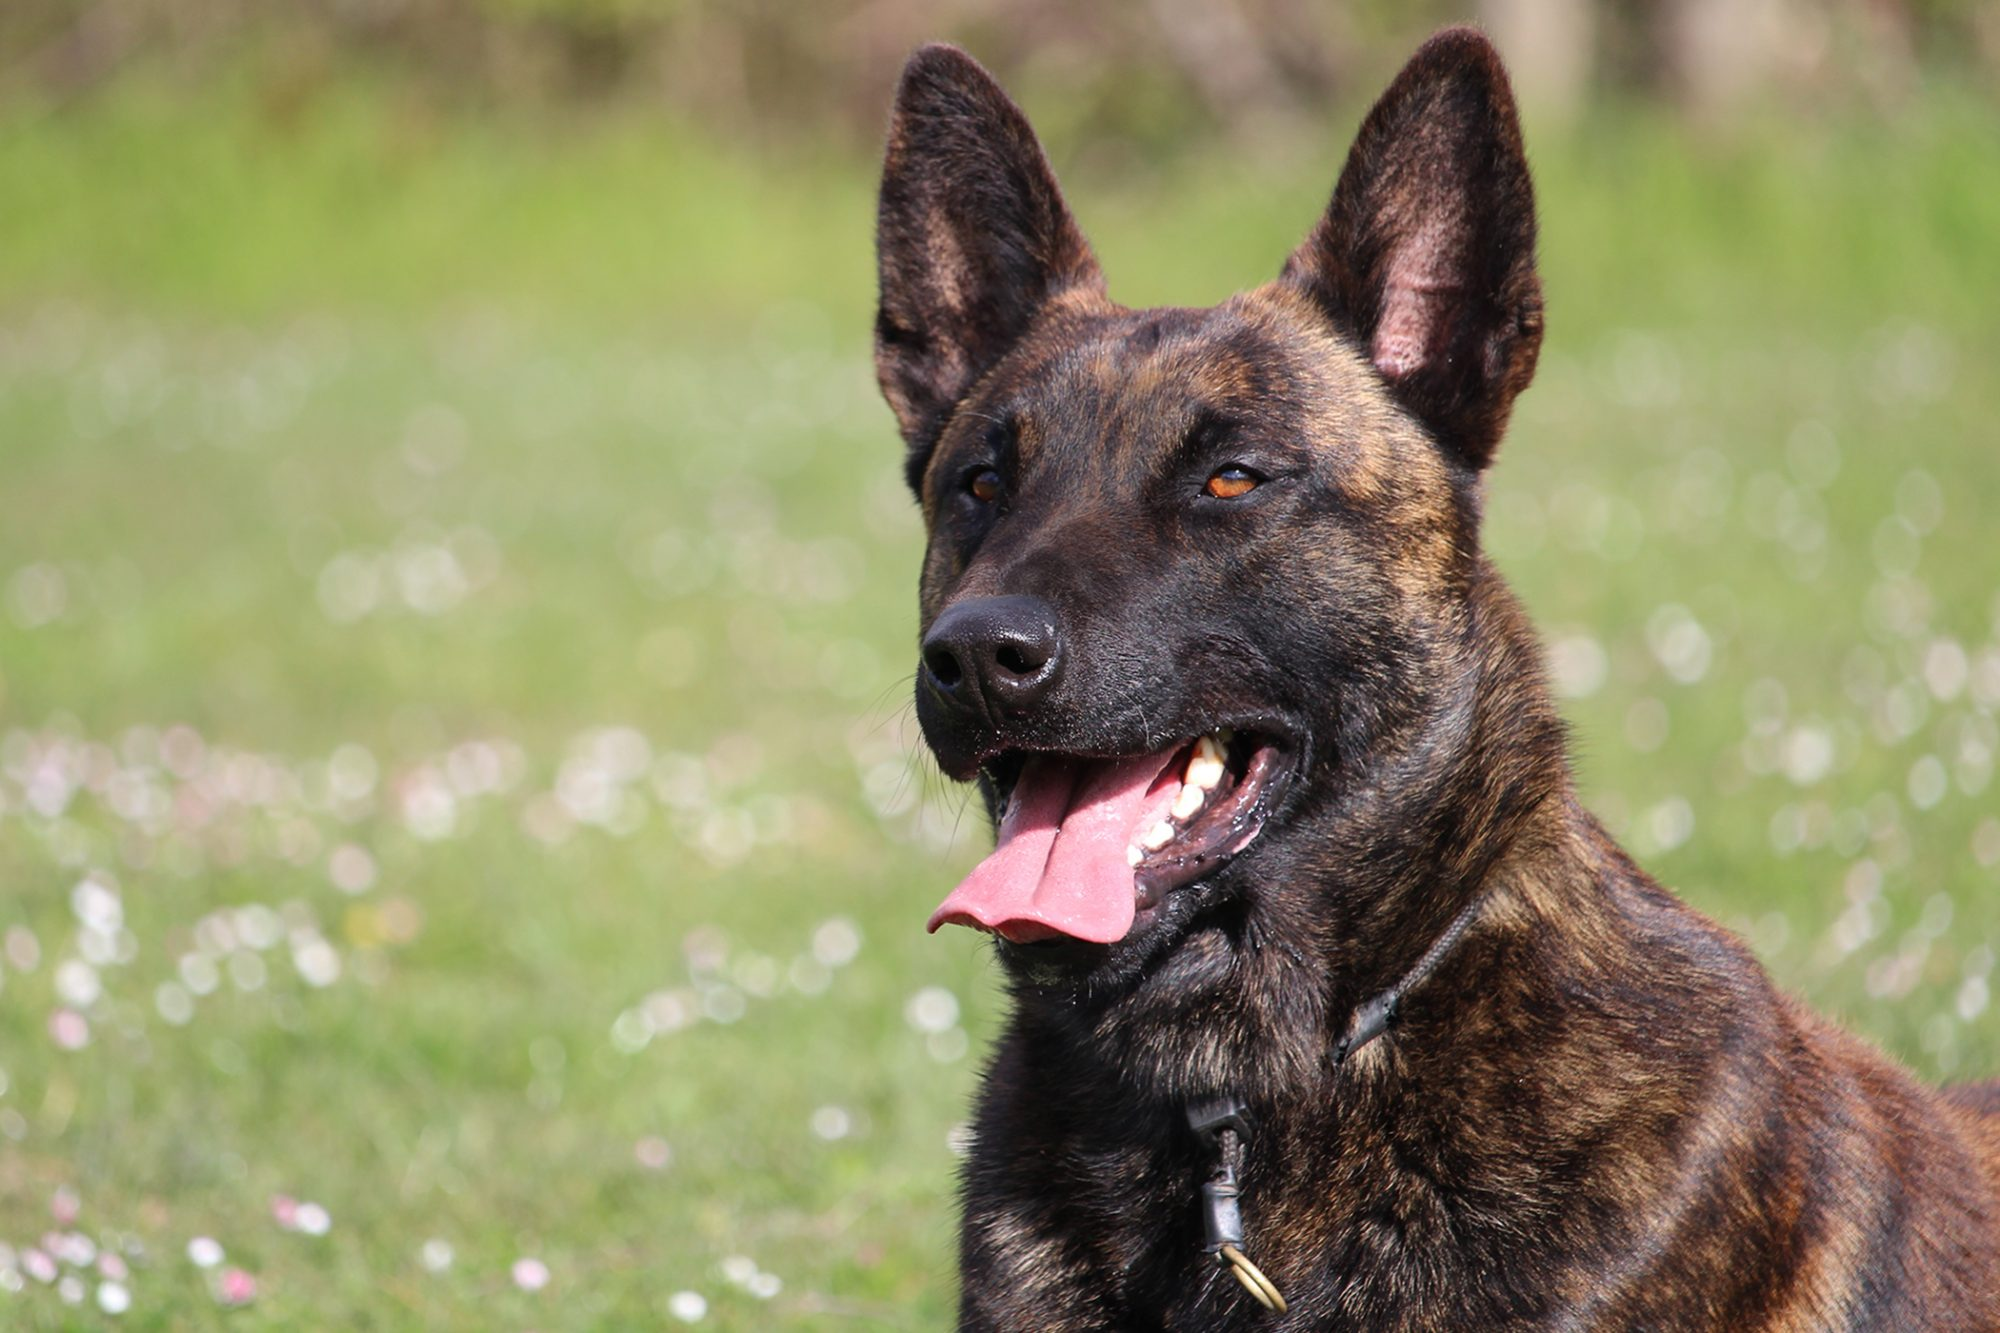 k9 finds missing child in 5 minutes